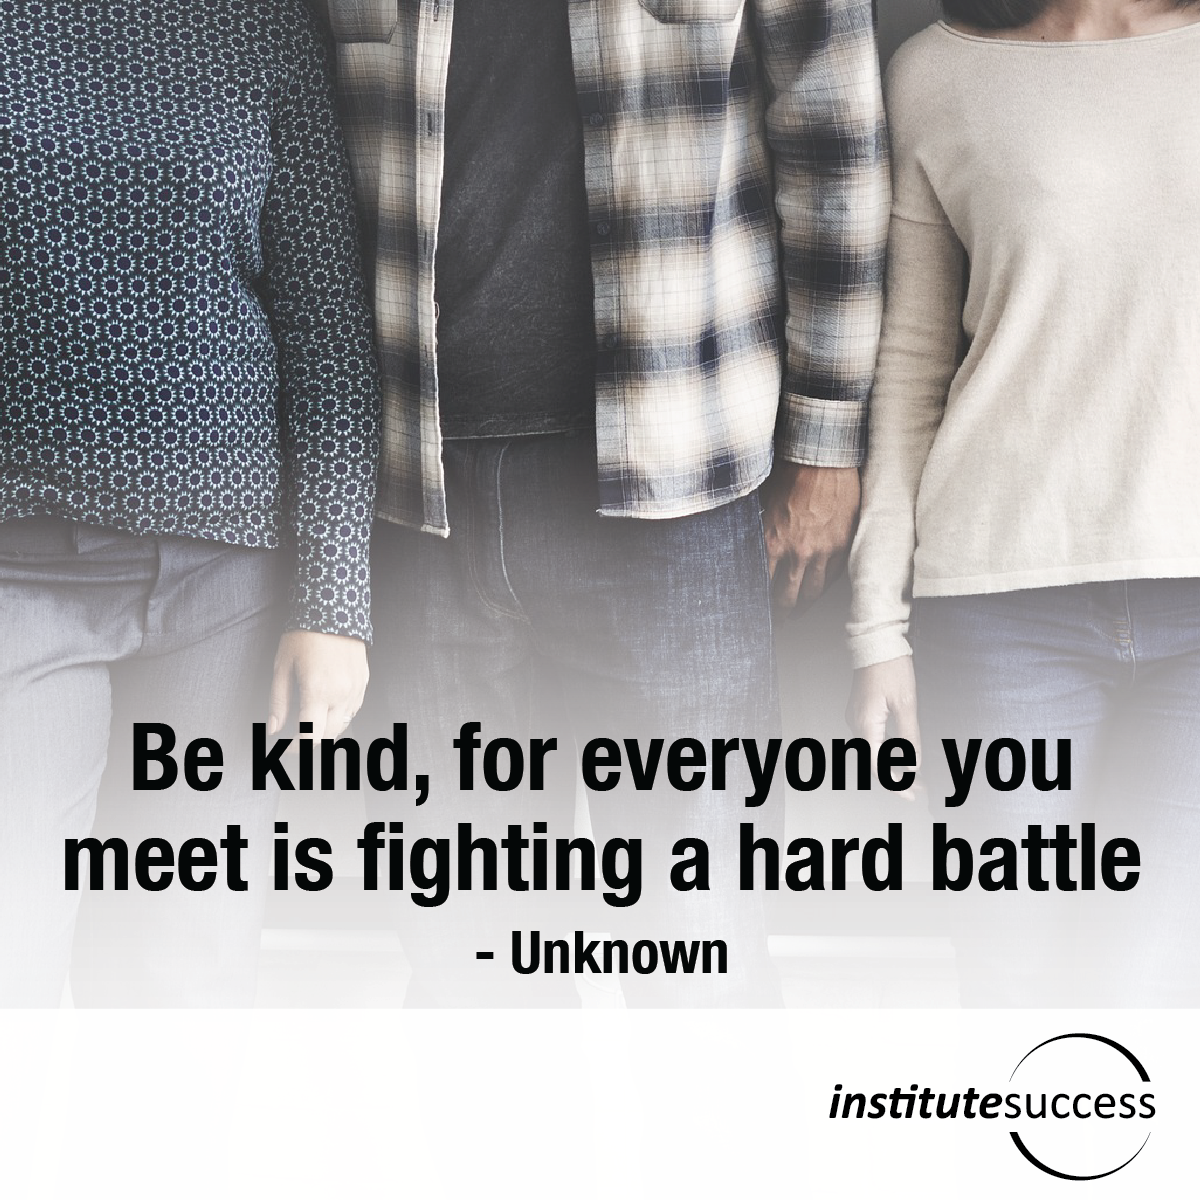 Be kind, for everyone you meet is fighting a hard battle – Unknown